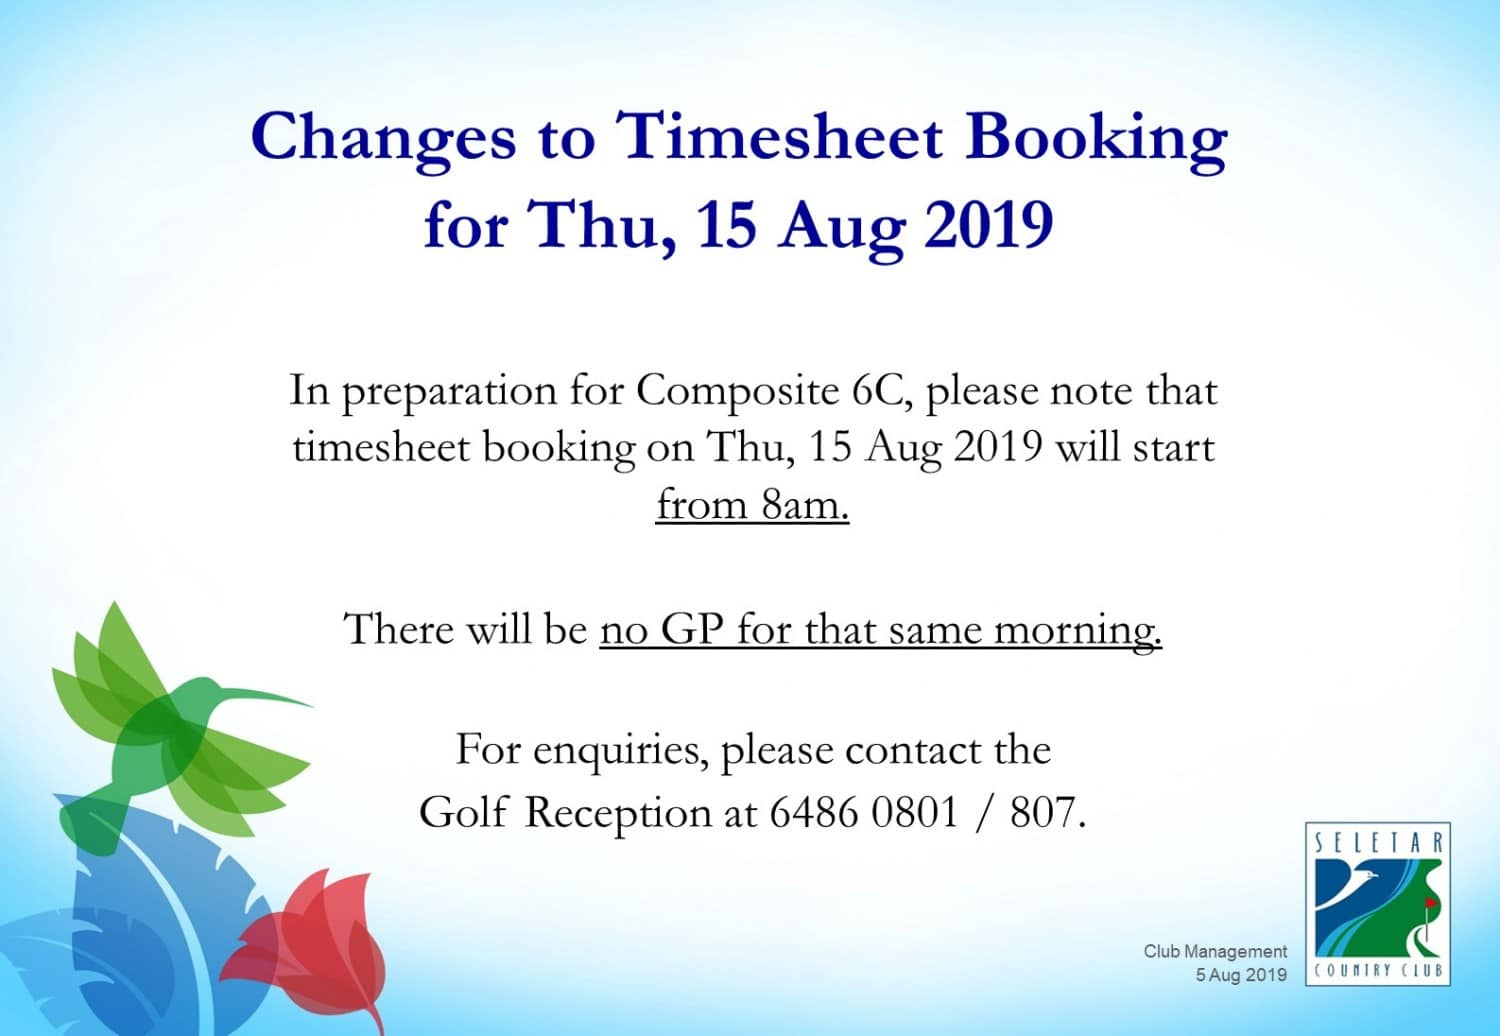 Changes to timesheet booking 15 Aug